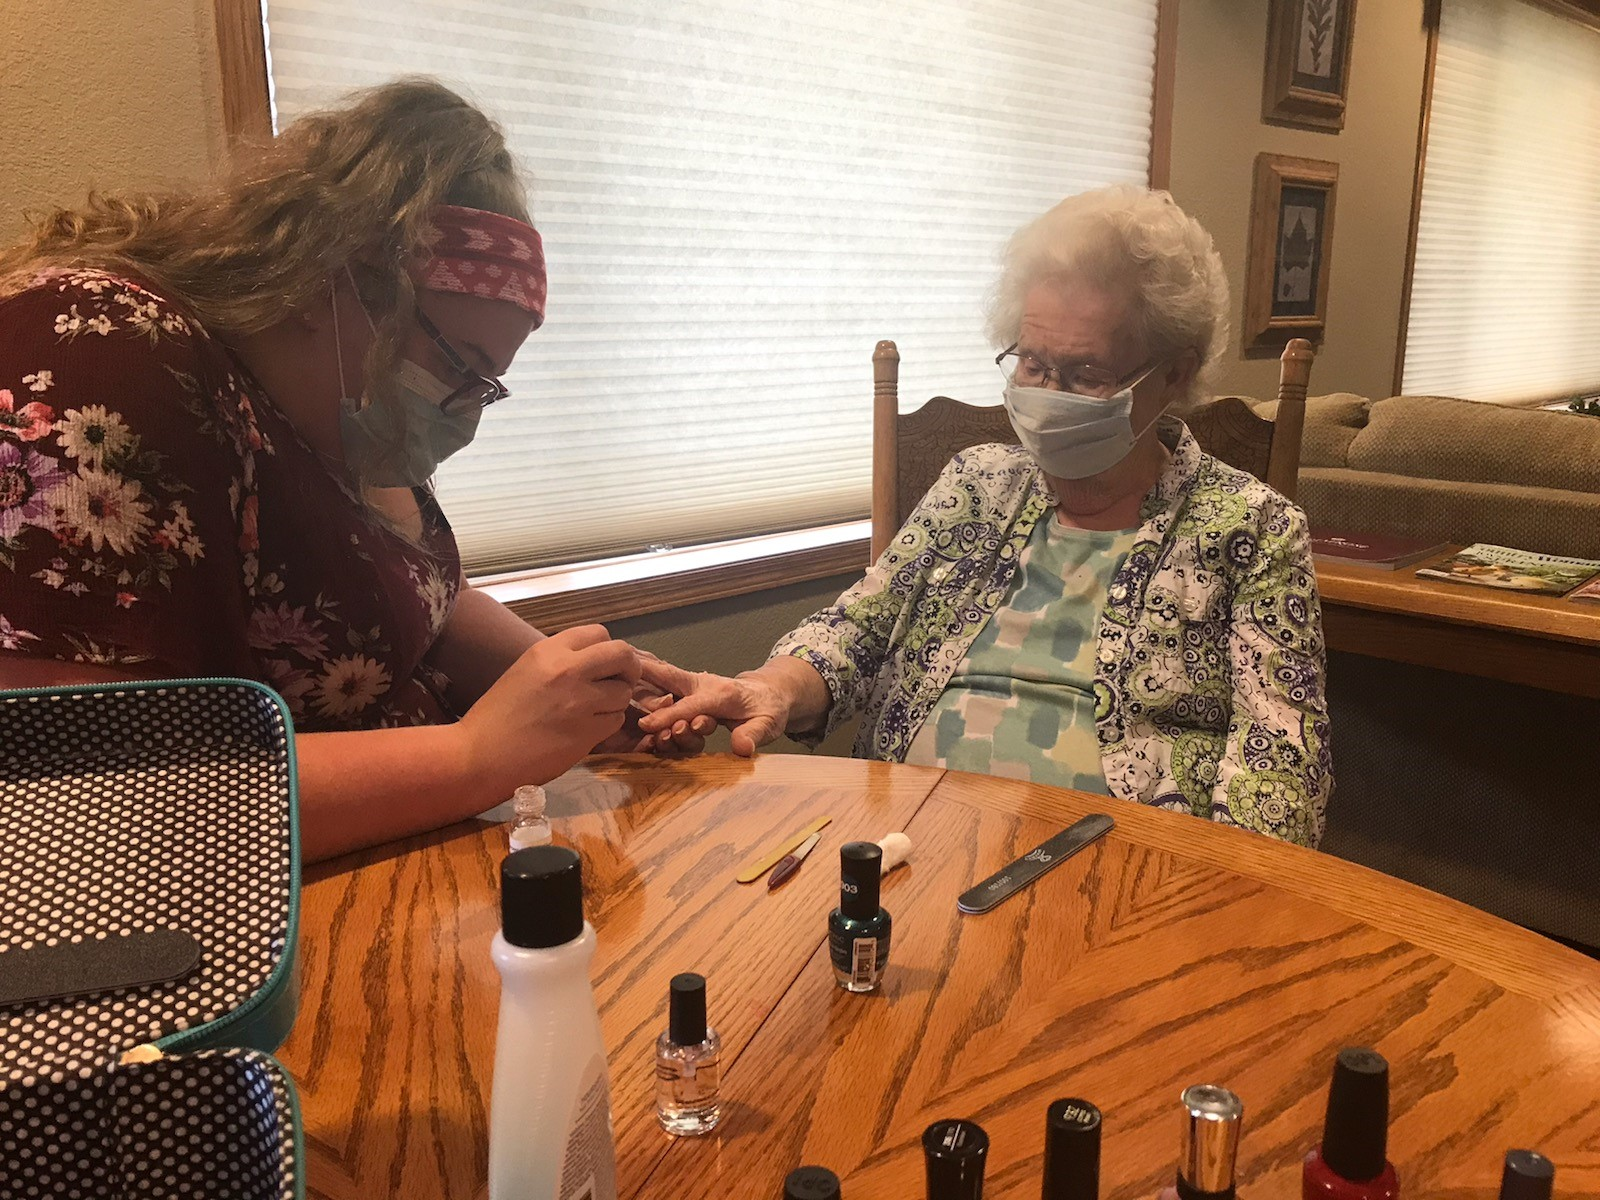 Mary gives Marlyss a little manicure! This is living!